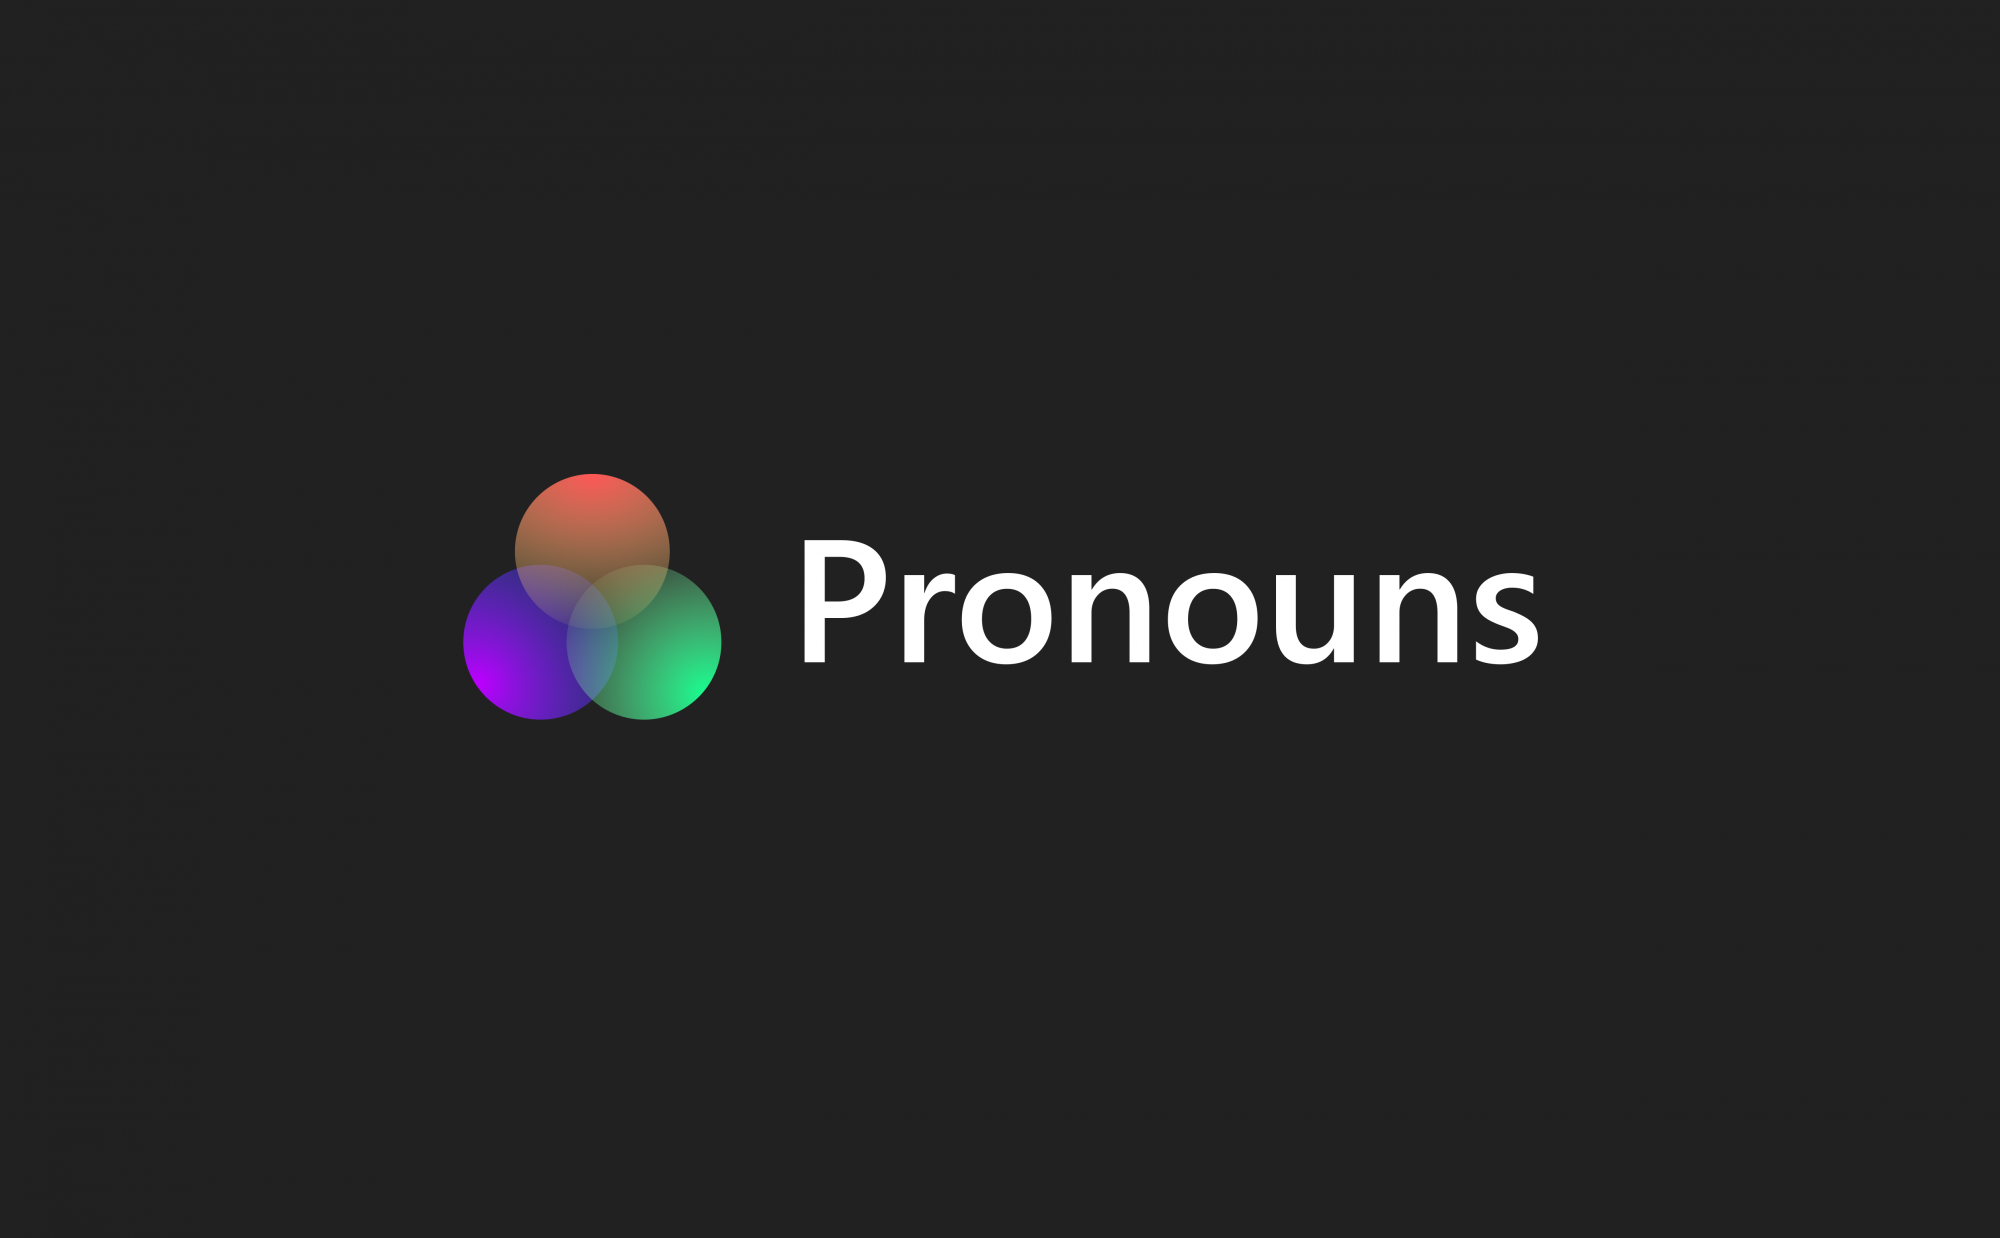 An example of a pronoun icon in gradient format with some supporting text which reads 'pronouns'